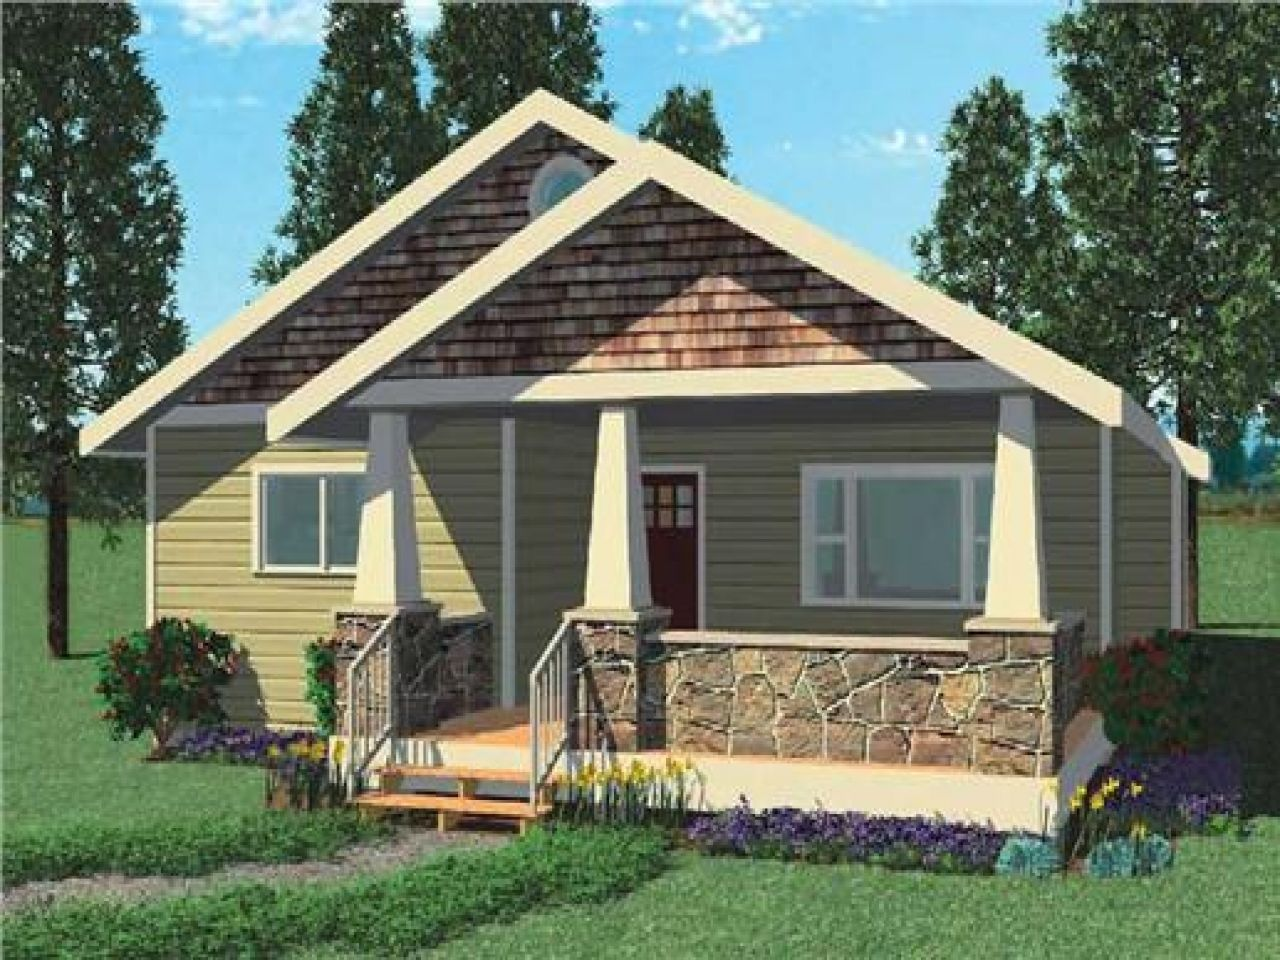 Tiny Home Plans You Can Use To Build Your Own Home Read More Here Bungalow House Plans Bungalow House Design Duplex House Design